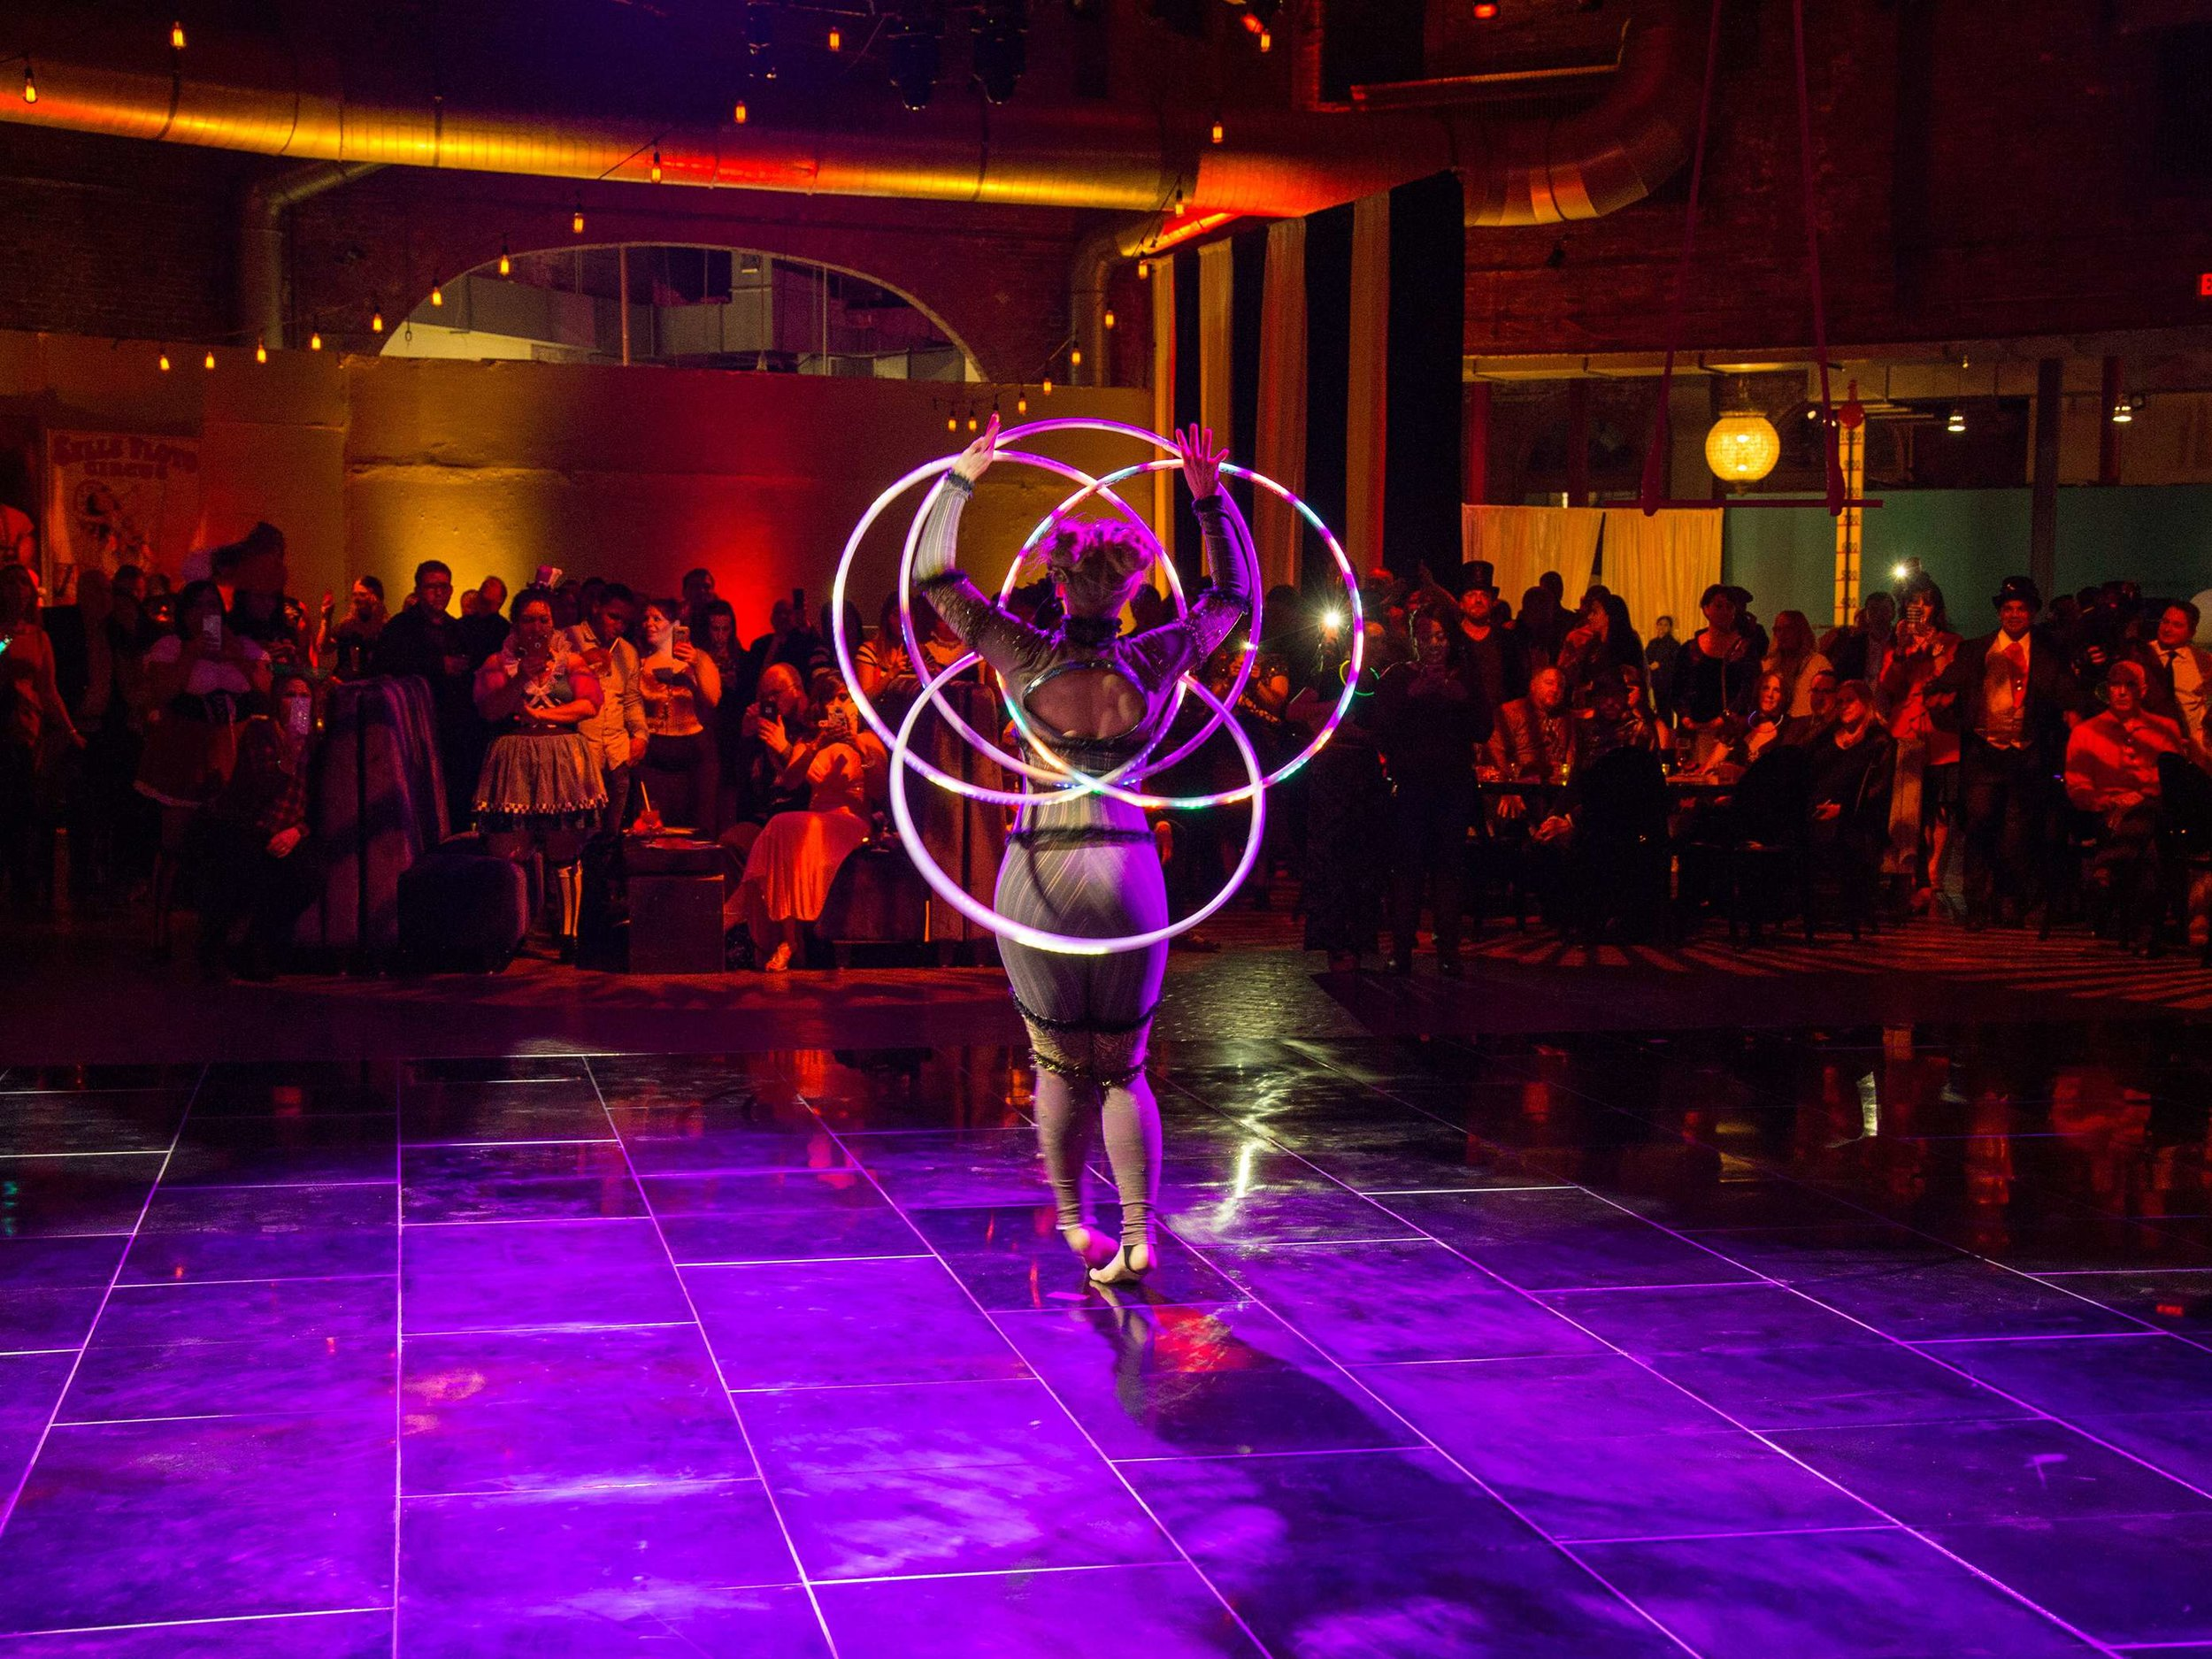 led-hooper-circus-entertainment-at-cyclorama-in-boston-ma-with-harrington-events-Kenneth-Berman-Photography.jpg